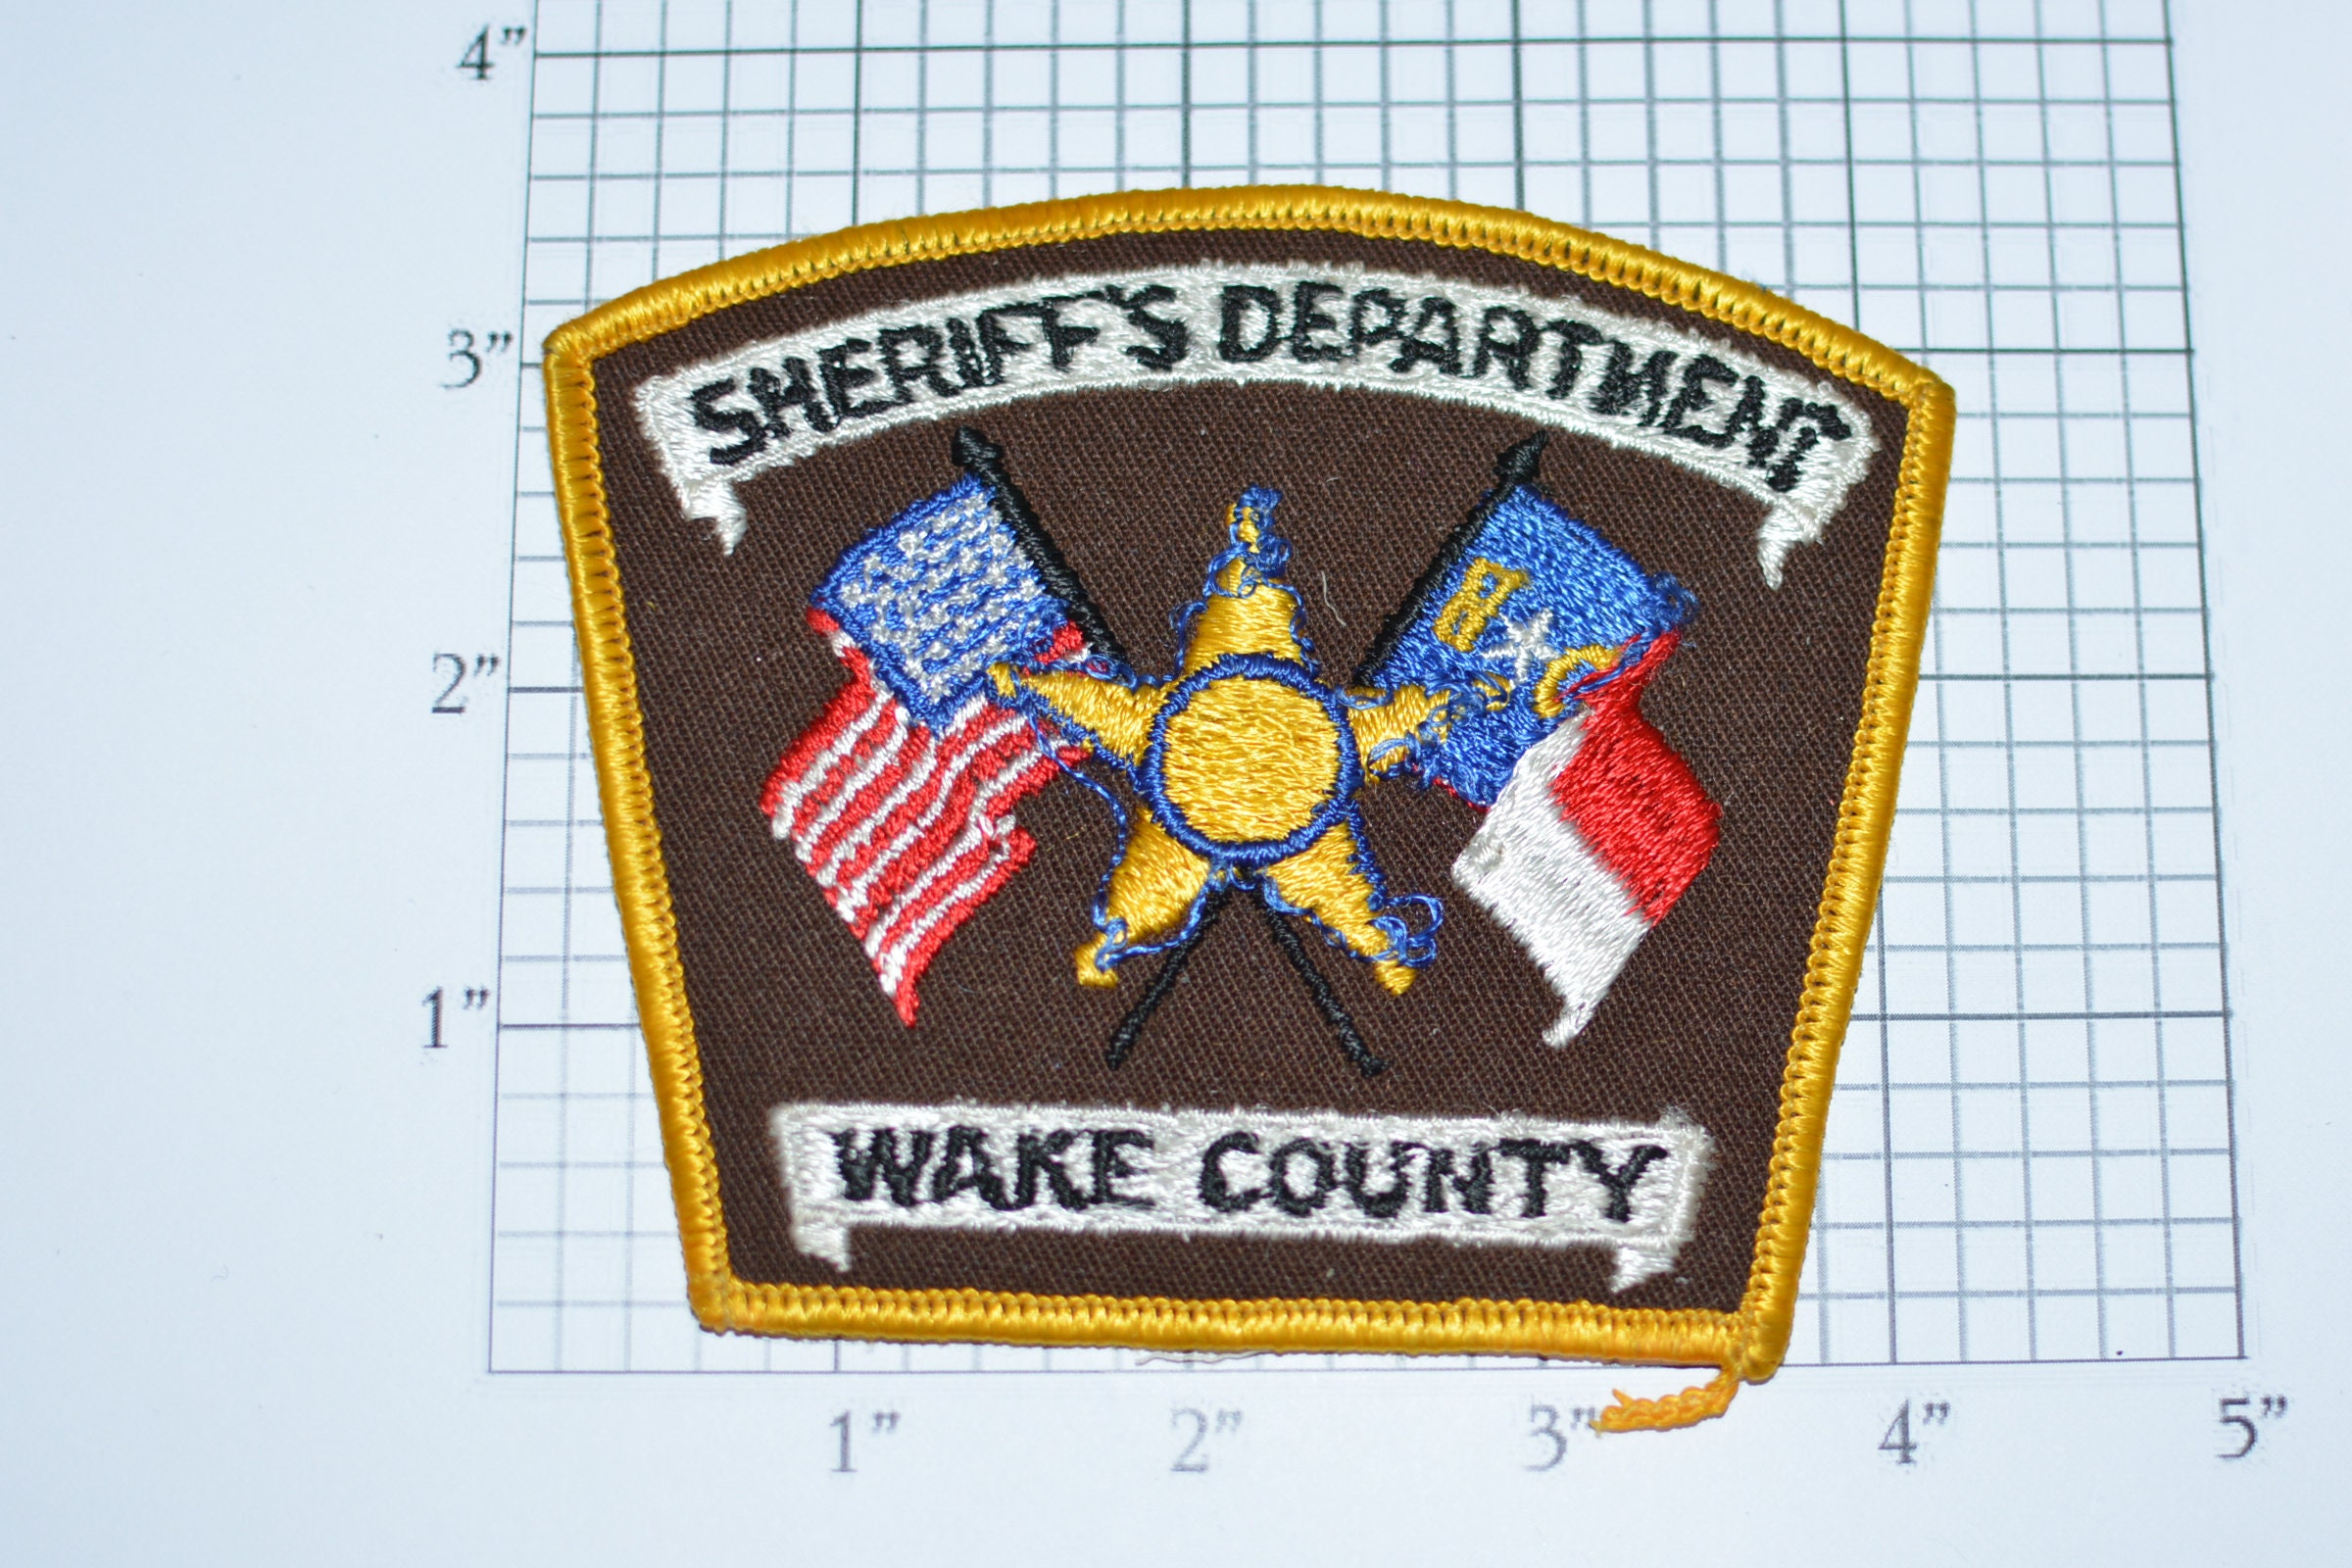 Sheriff's Dept Wake County N C  Sew-on Embroidered Patch